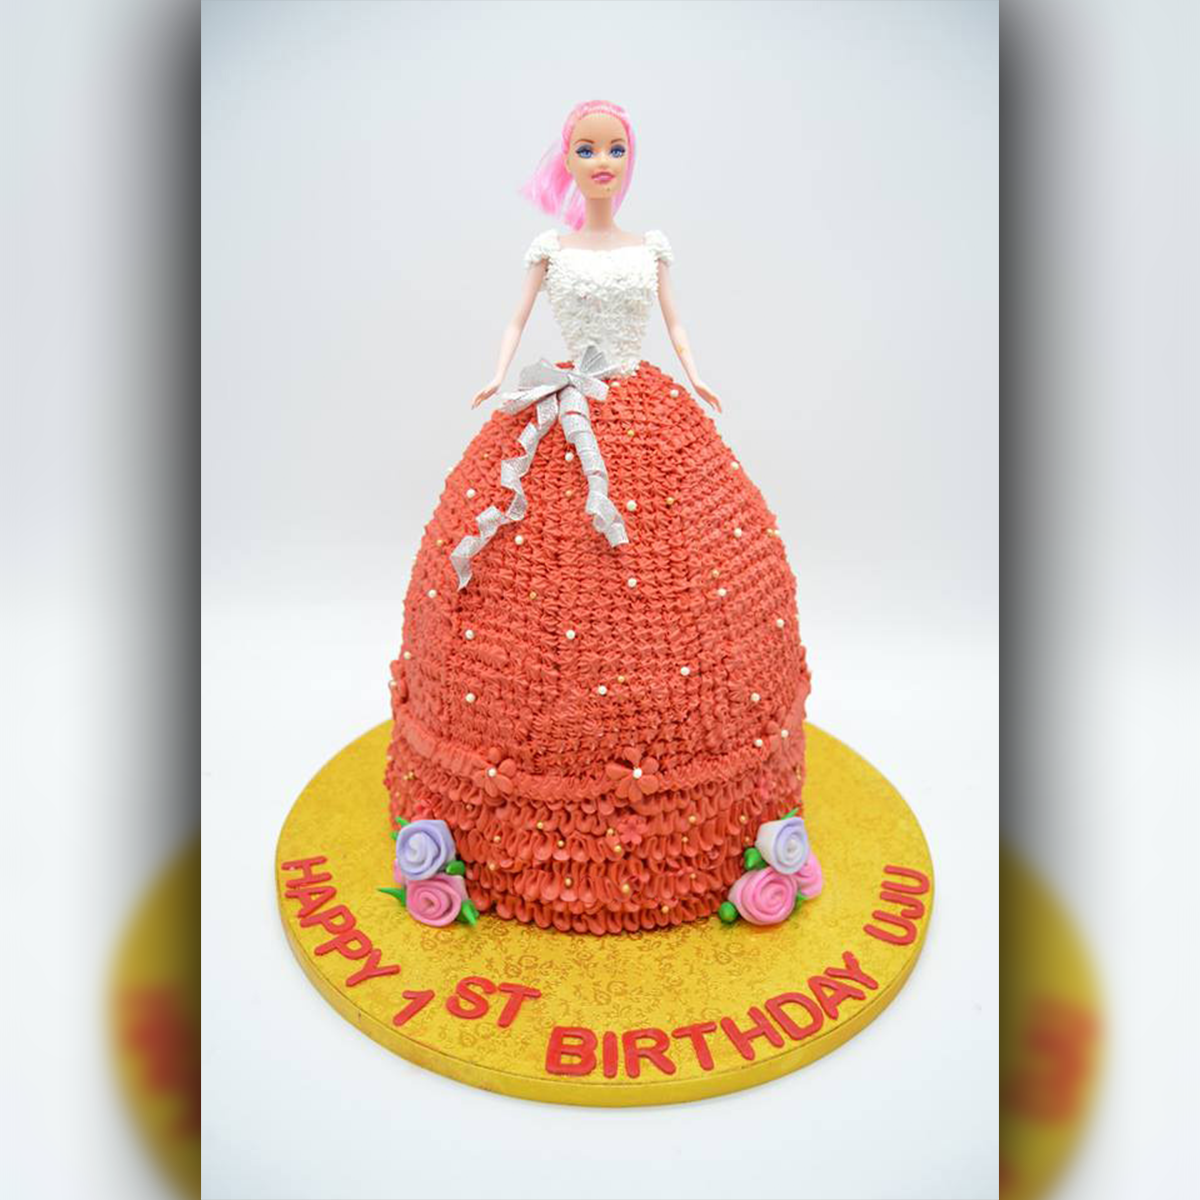 Barbie Cake - Arabian Petals